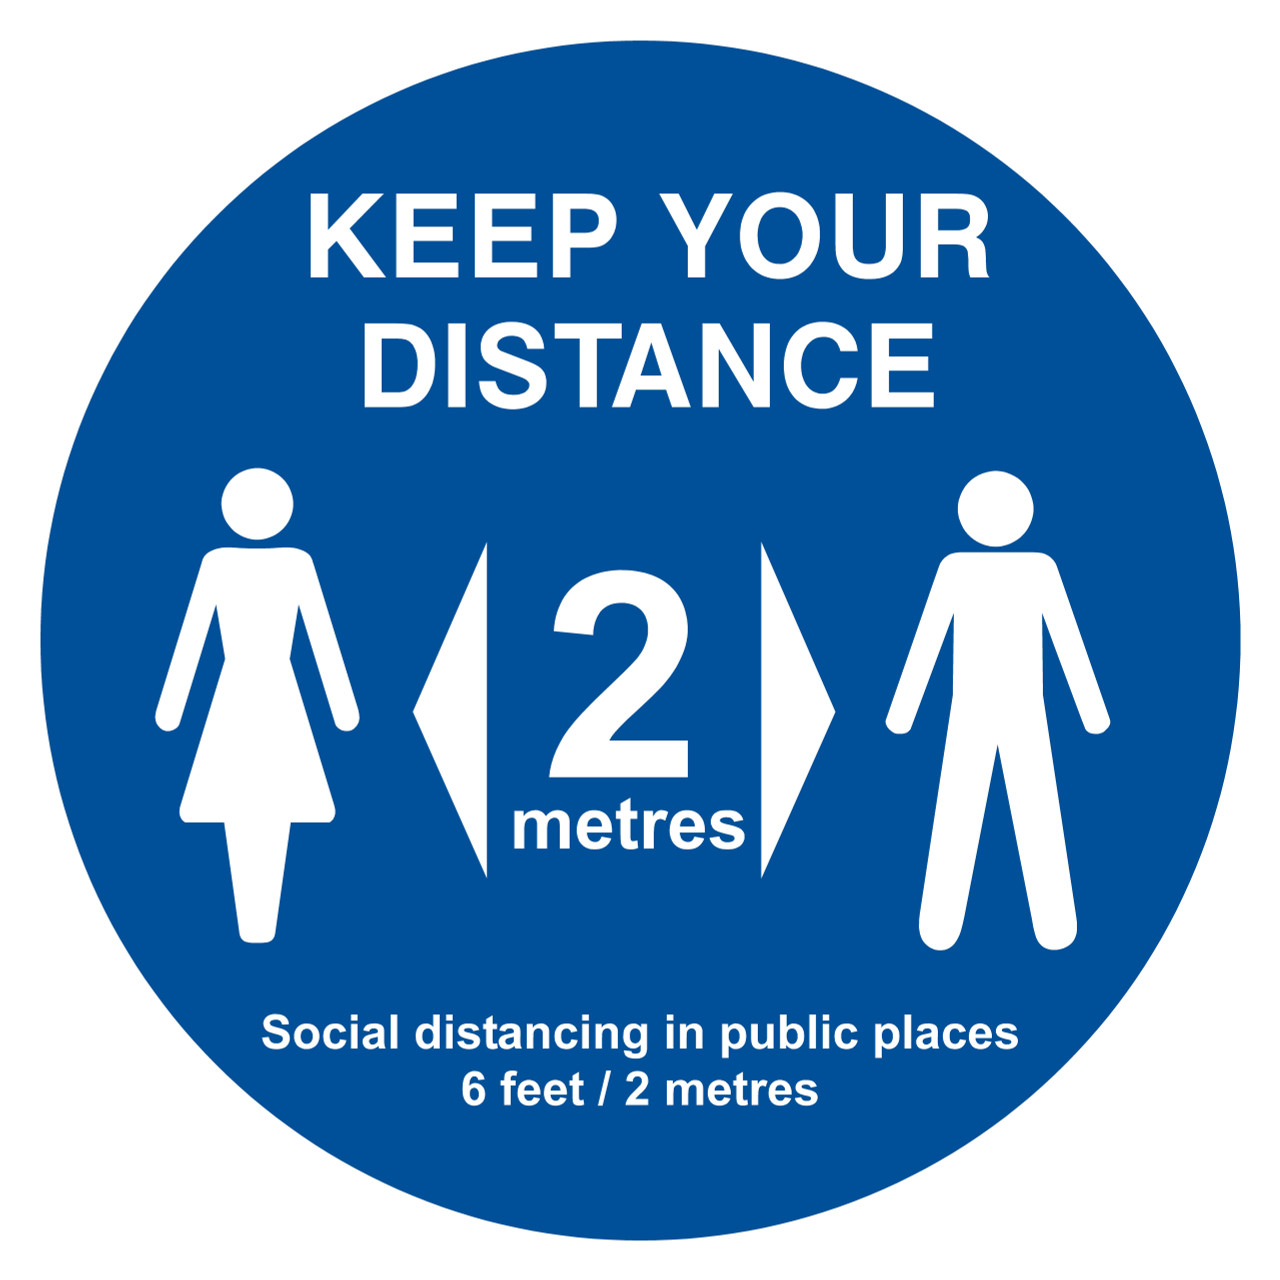 Keep Your Distance Circle Floor Sign